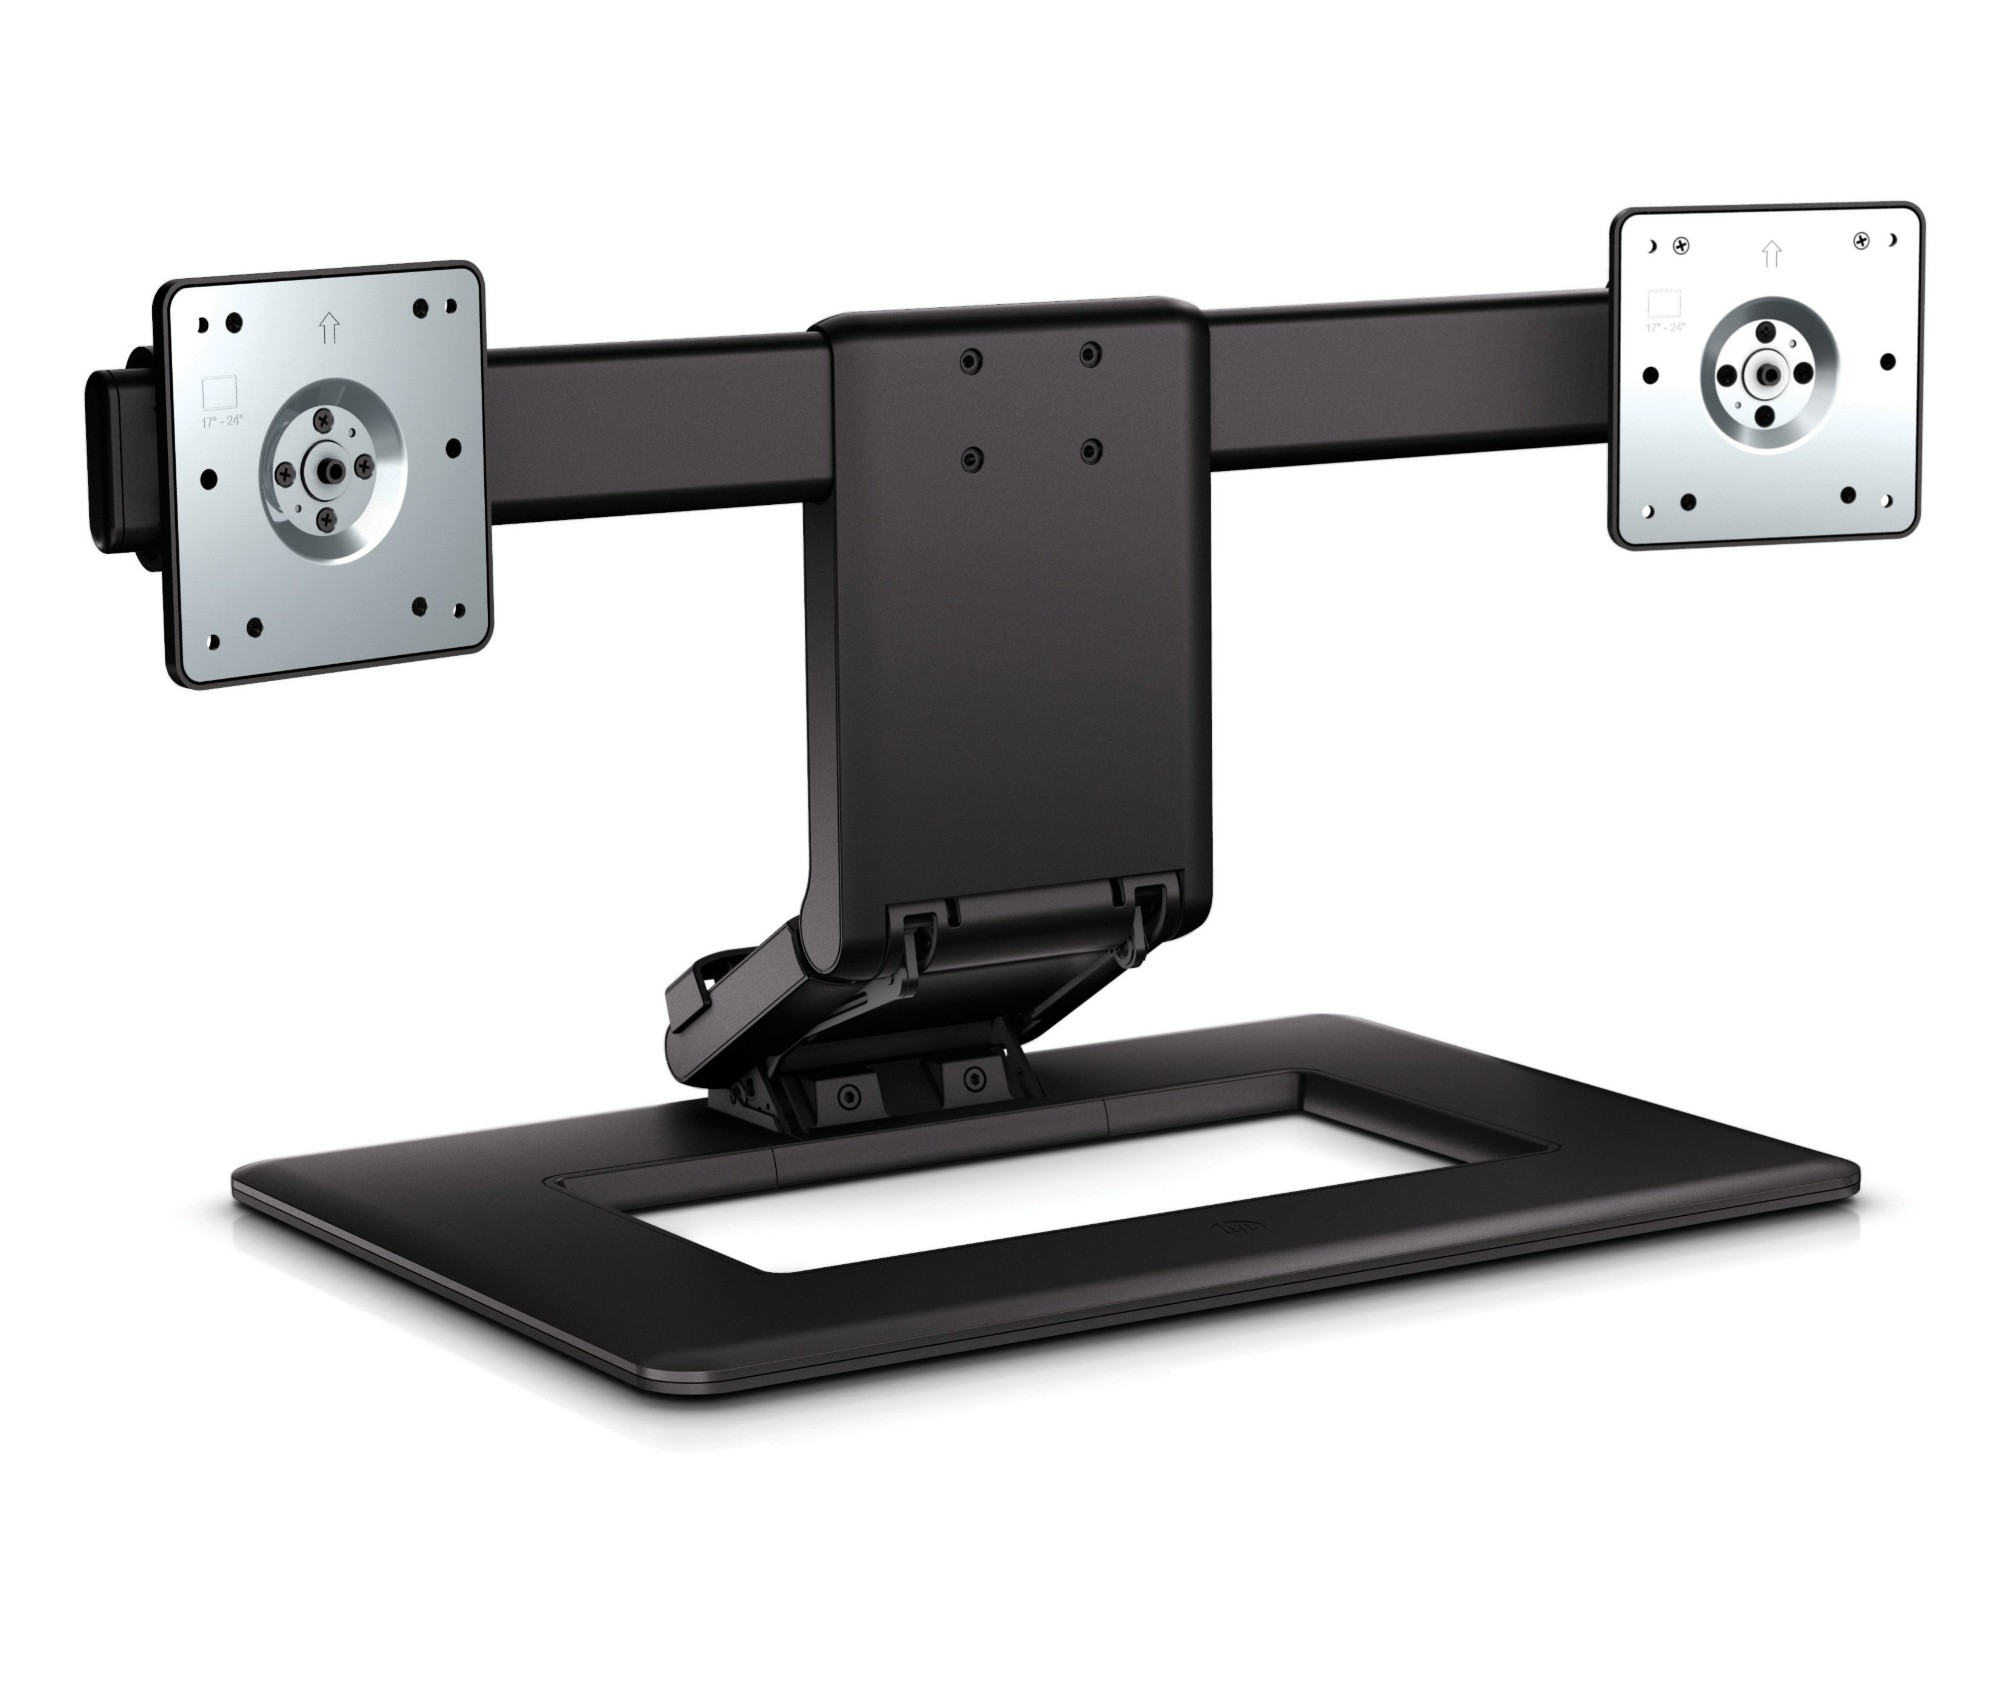 Adjustable Dual Display Stand (AW664AA)